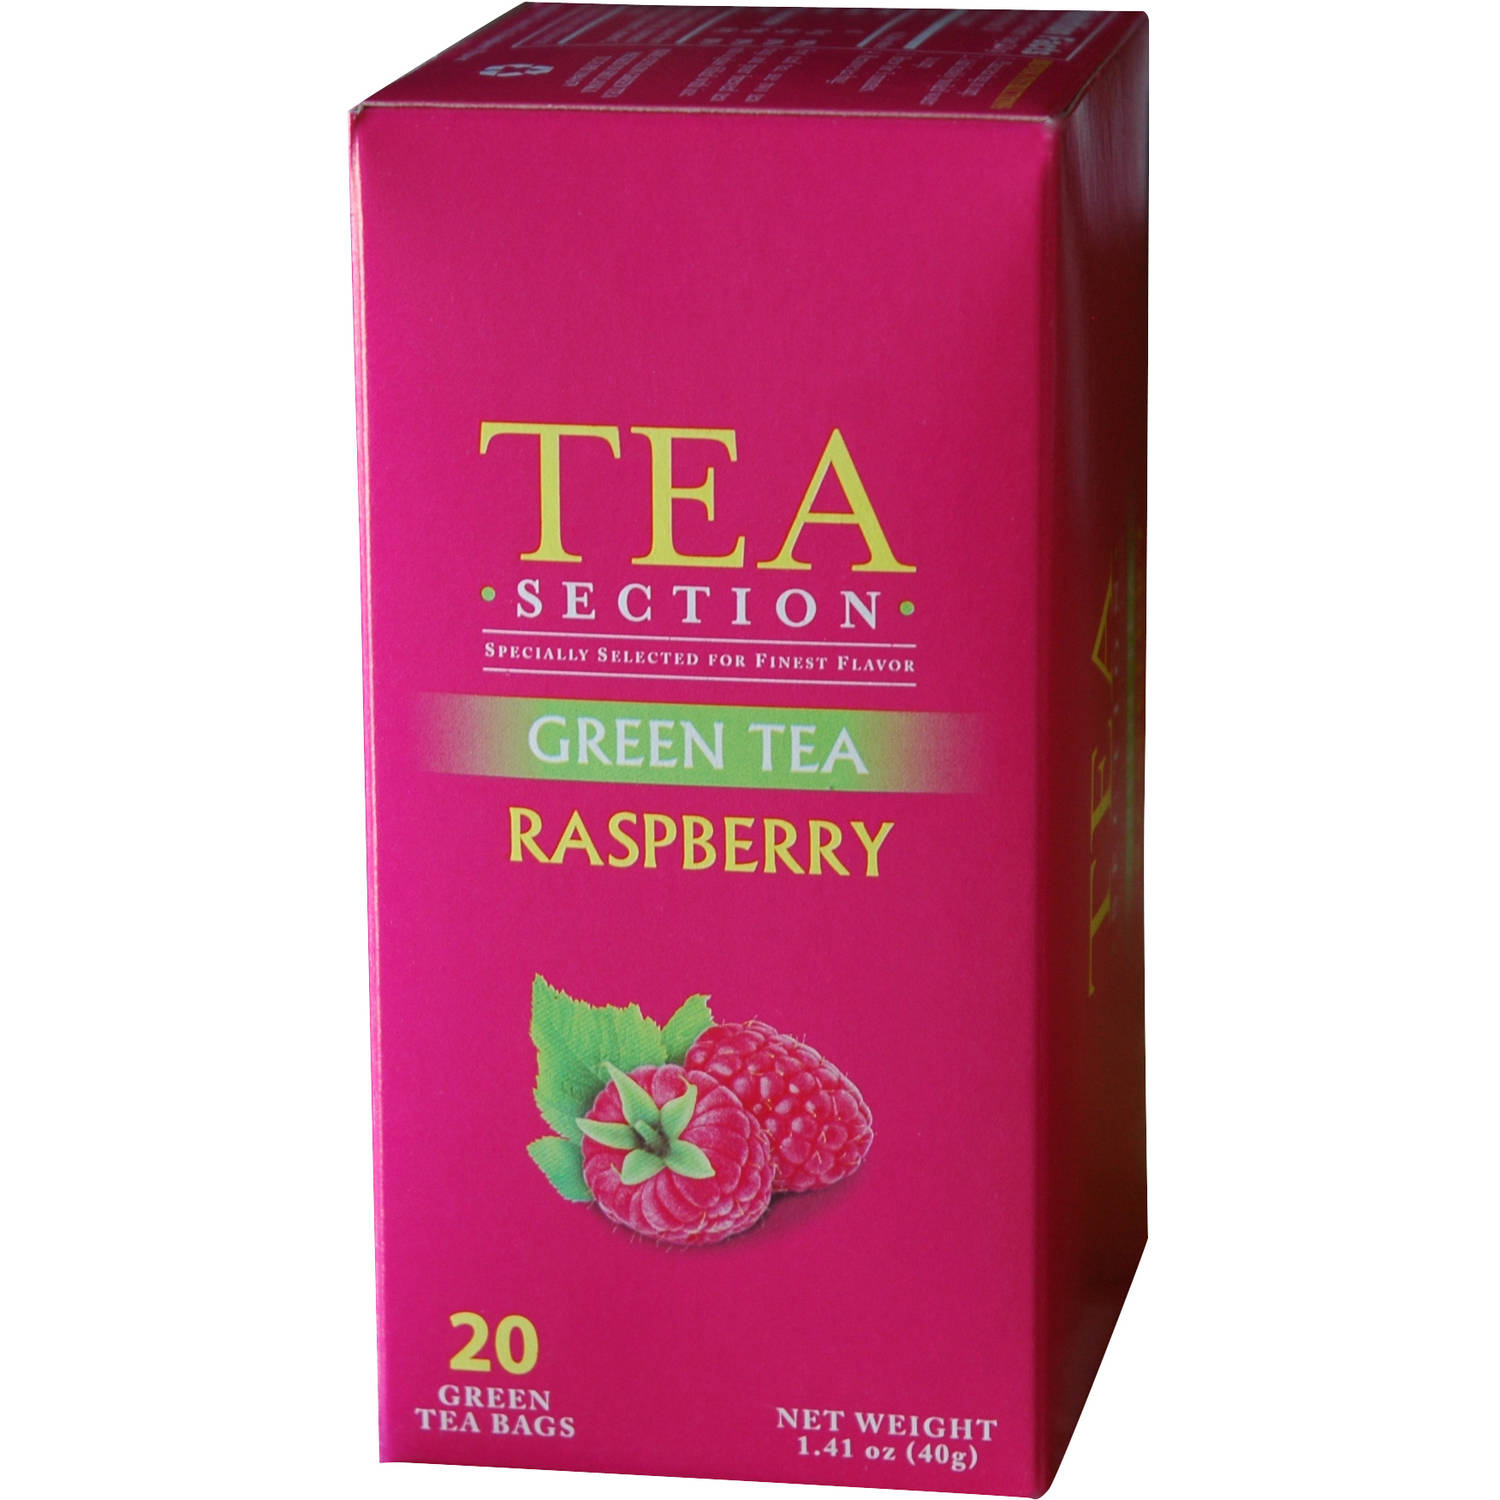 Tea Section Raspberry Green Tea Bags, 20 count, 1.41 oz